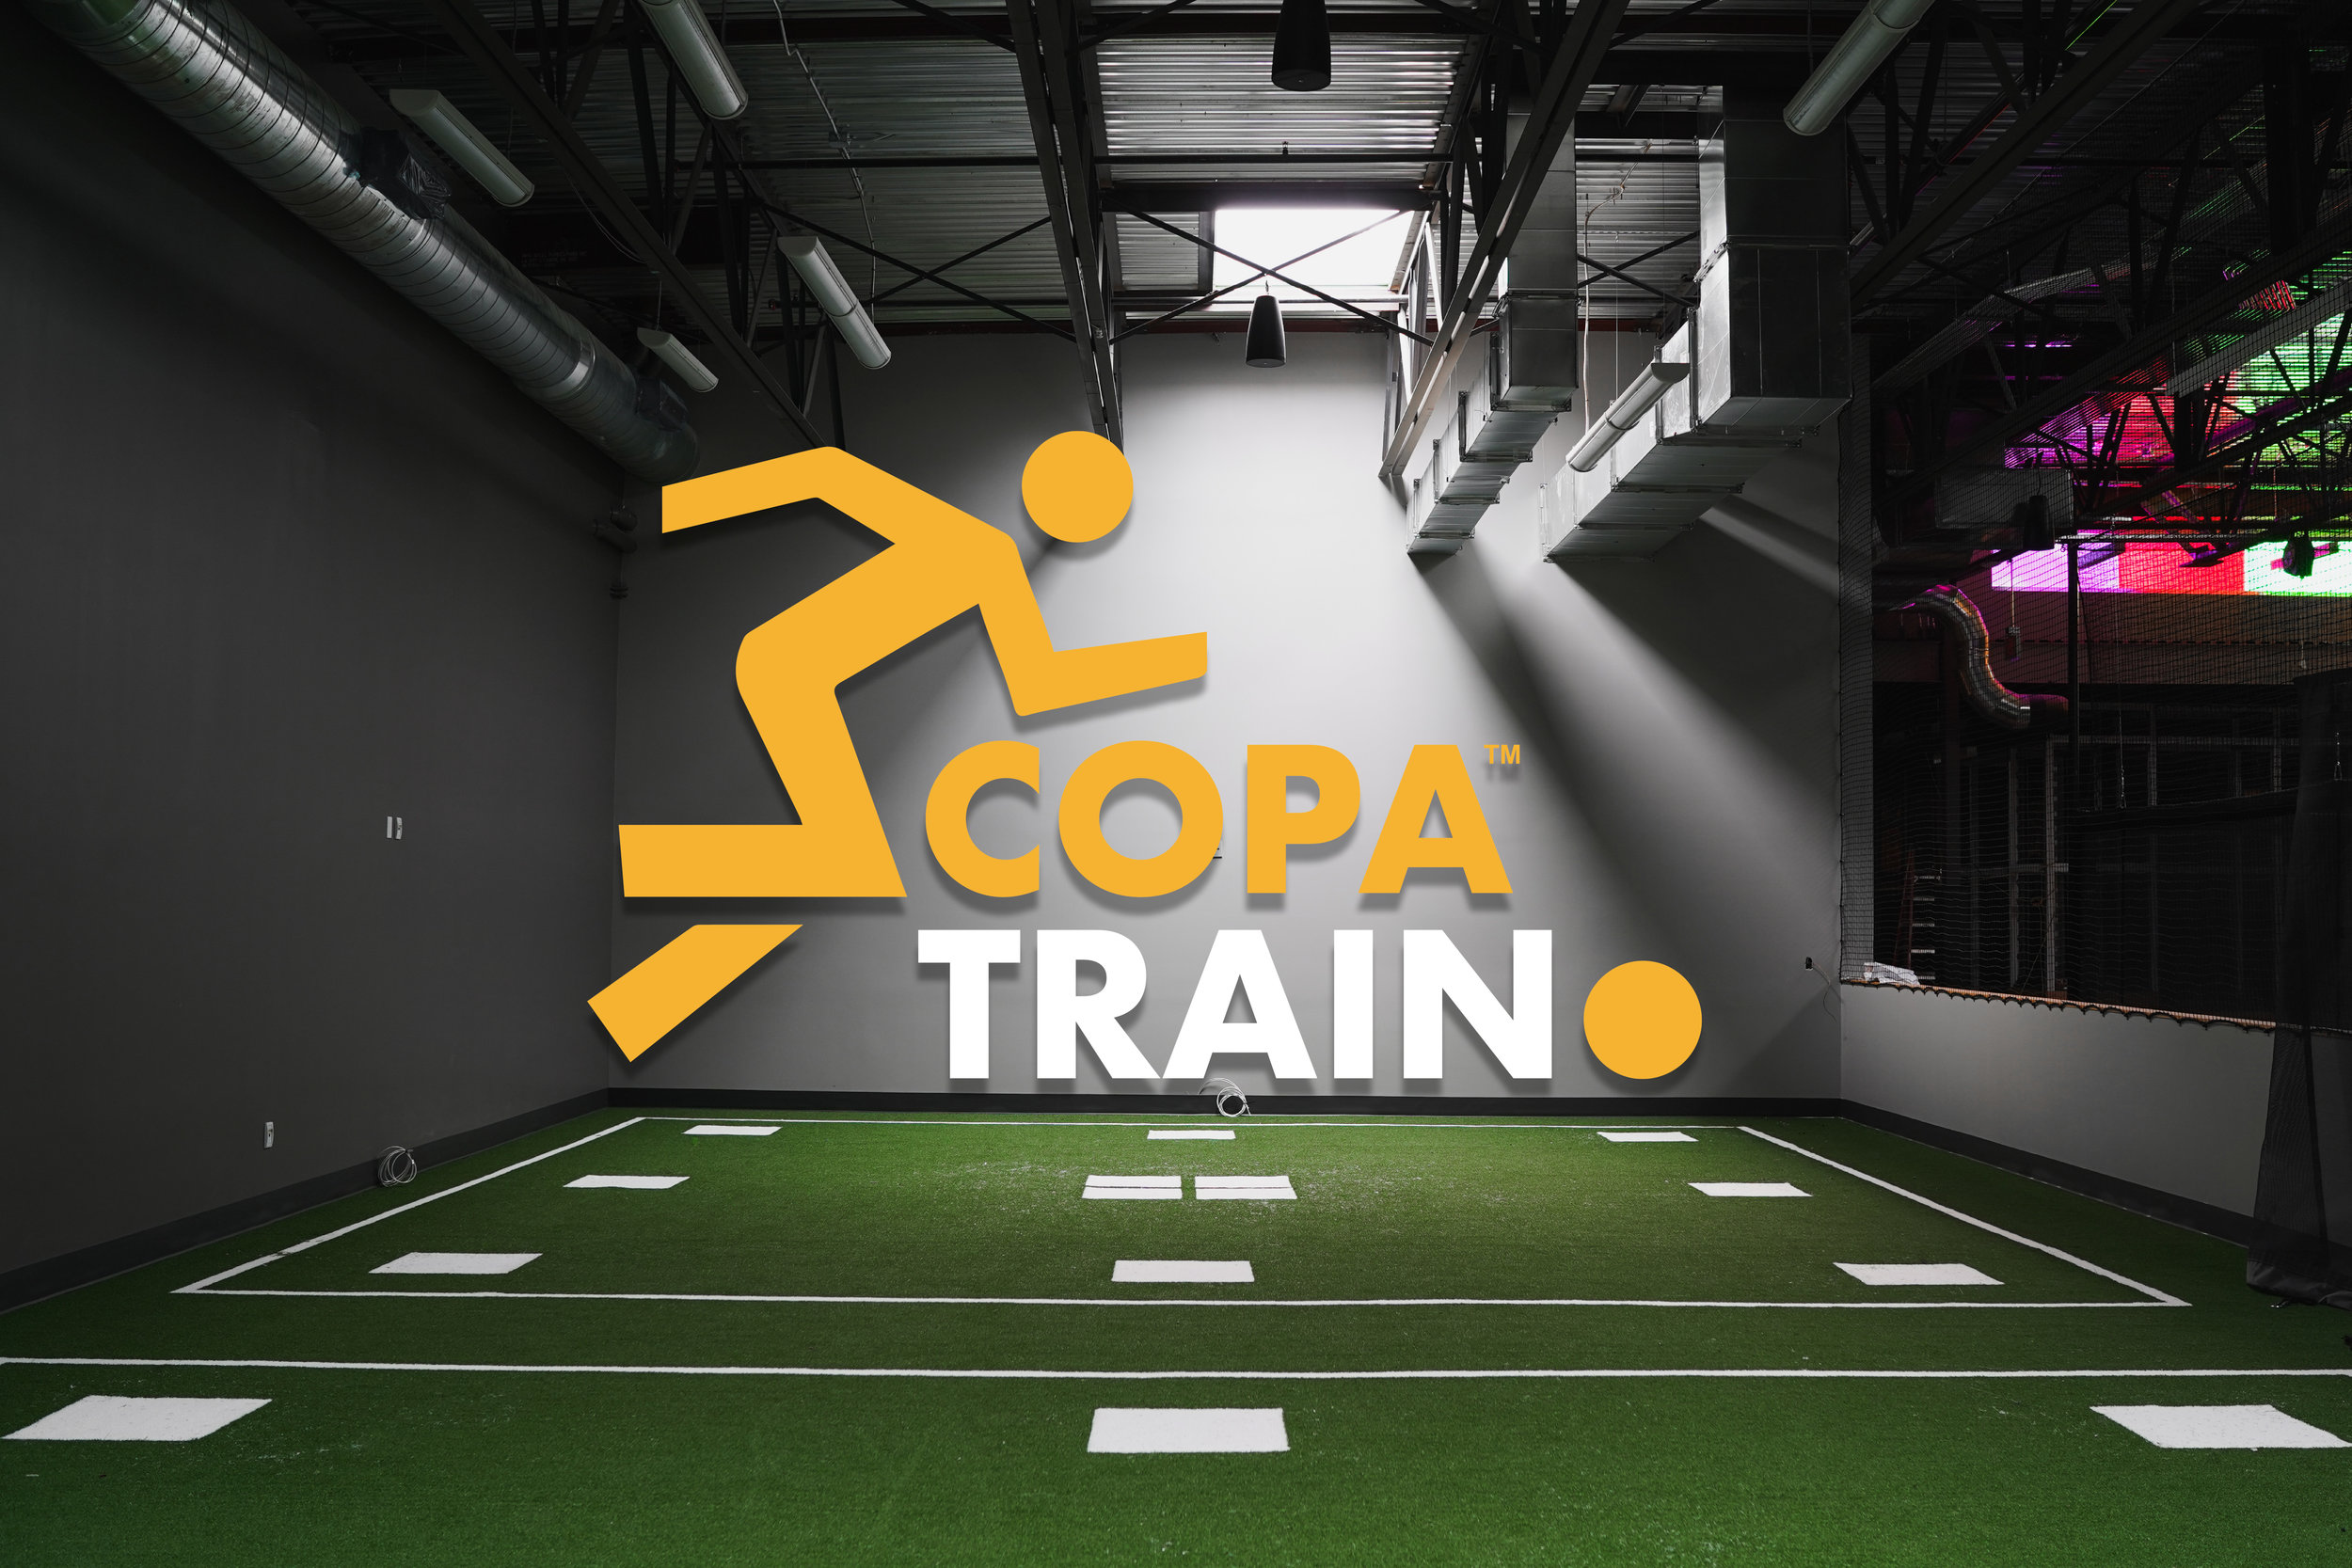 COPA Train with logo.jpg